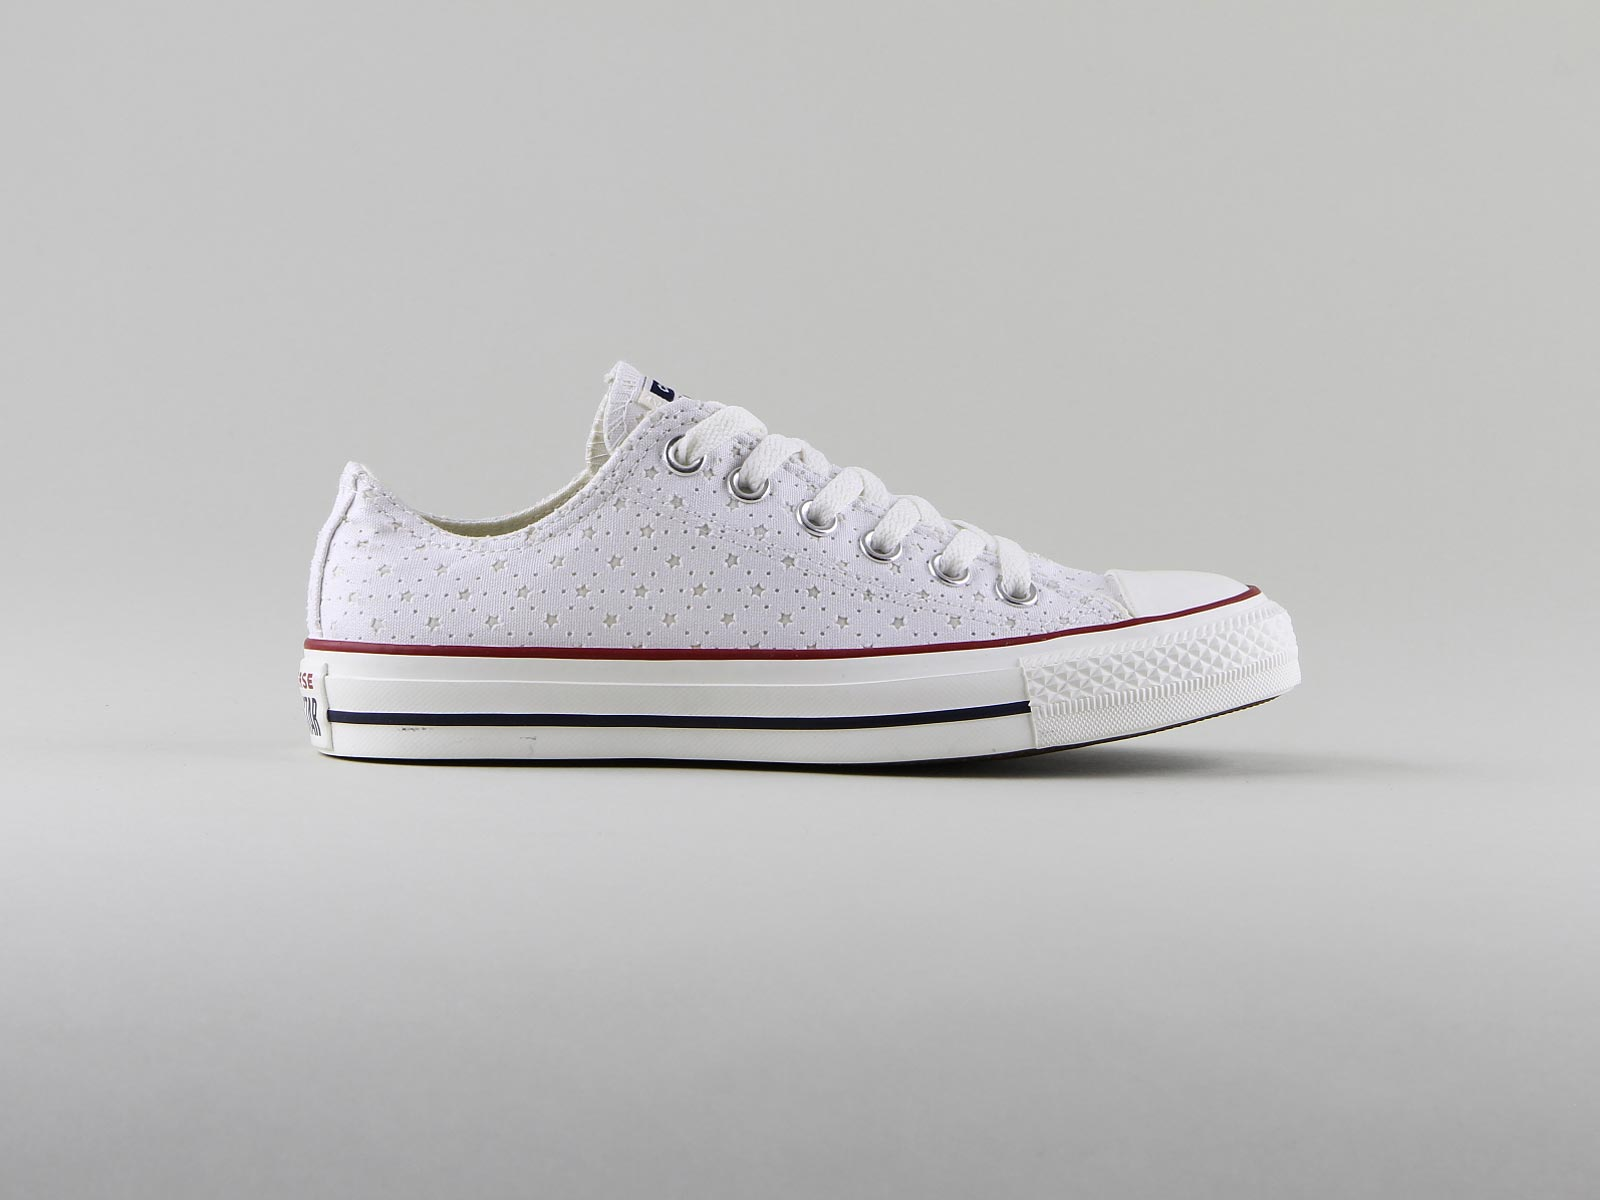 Chaussures Converse CHUCK TAYLOR ALL STAR OX Lacets